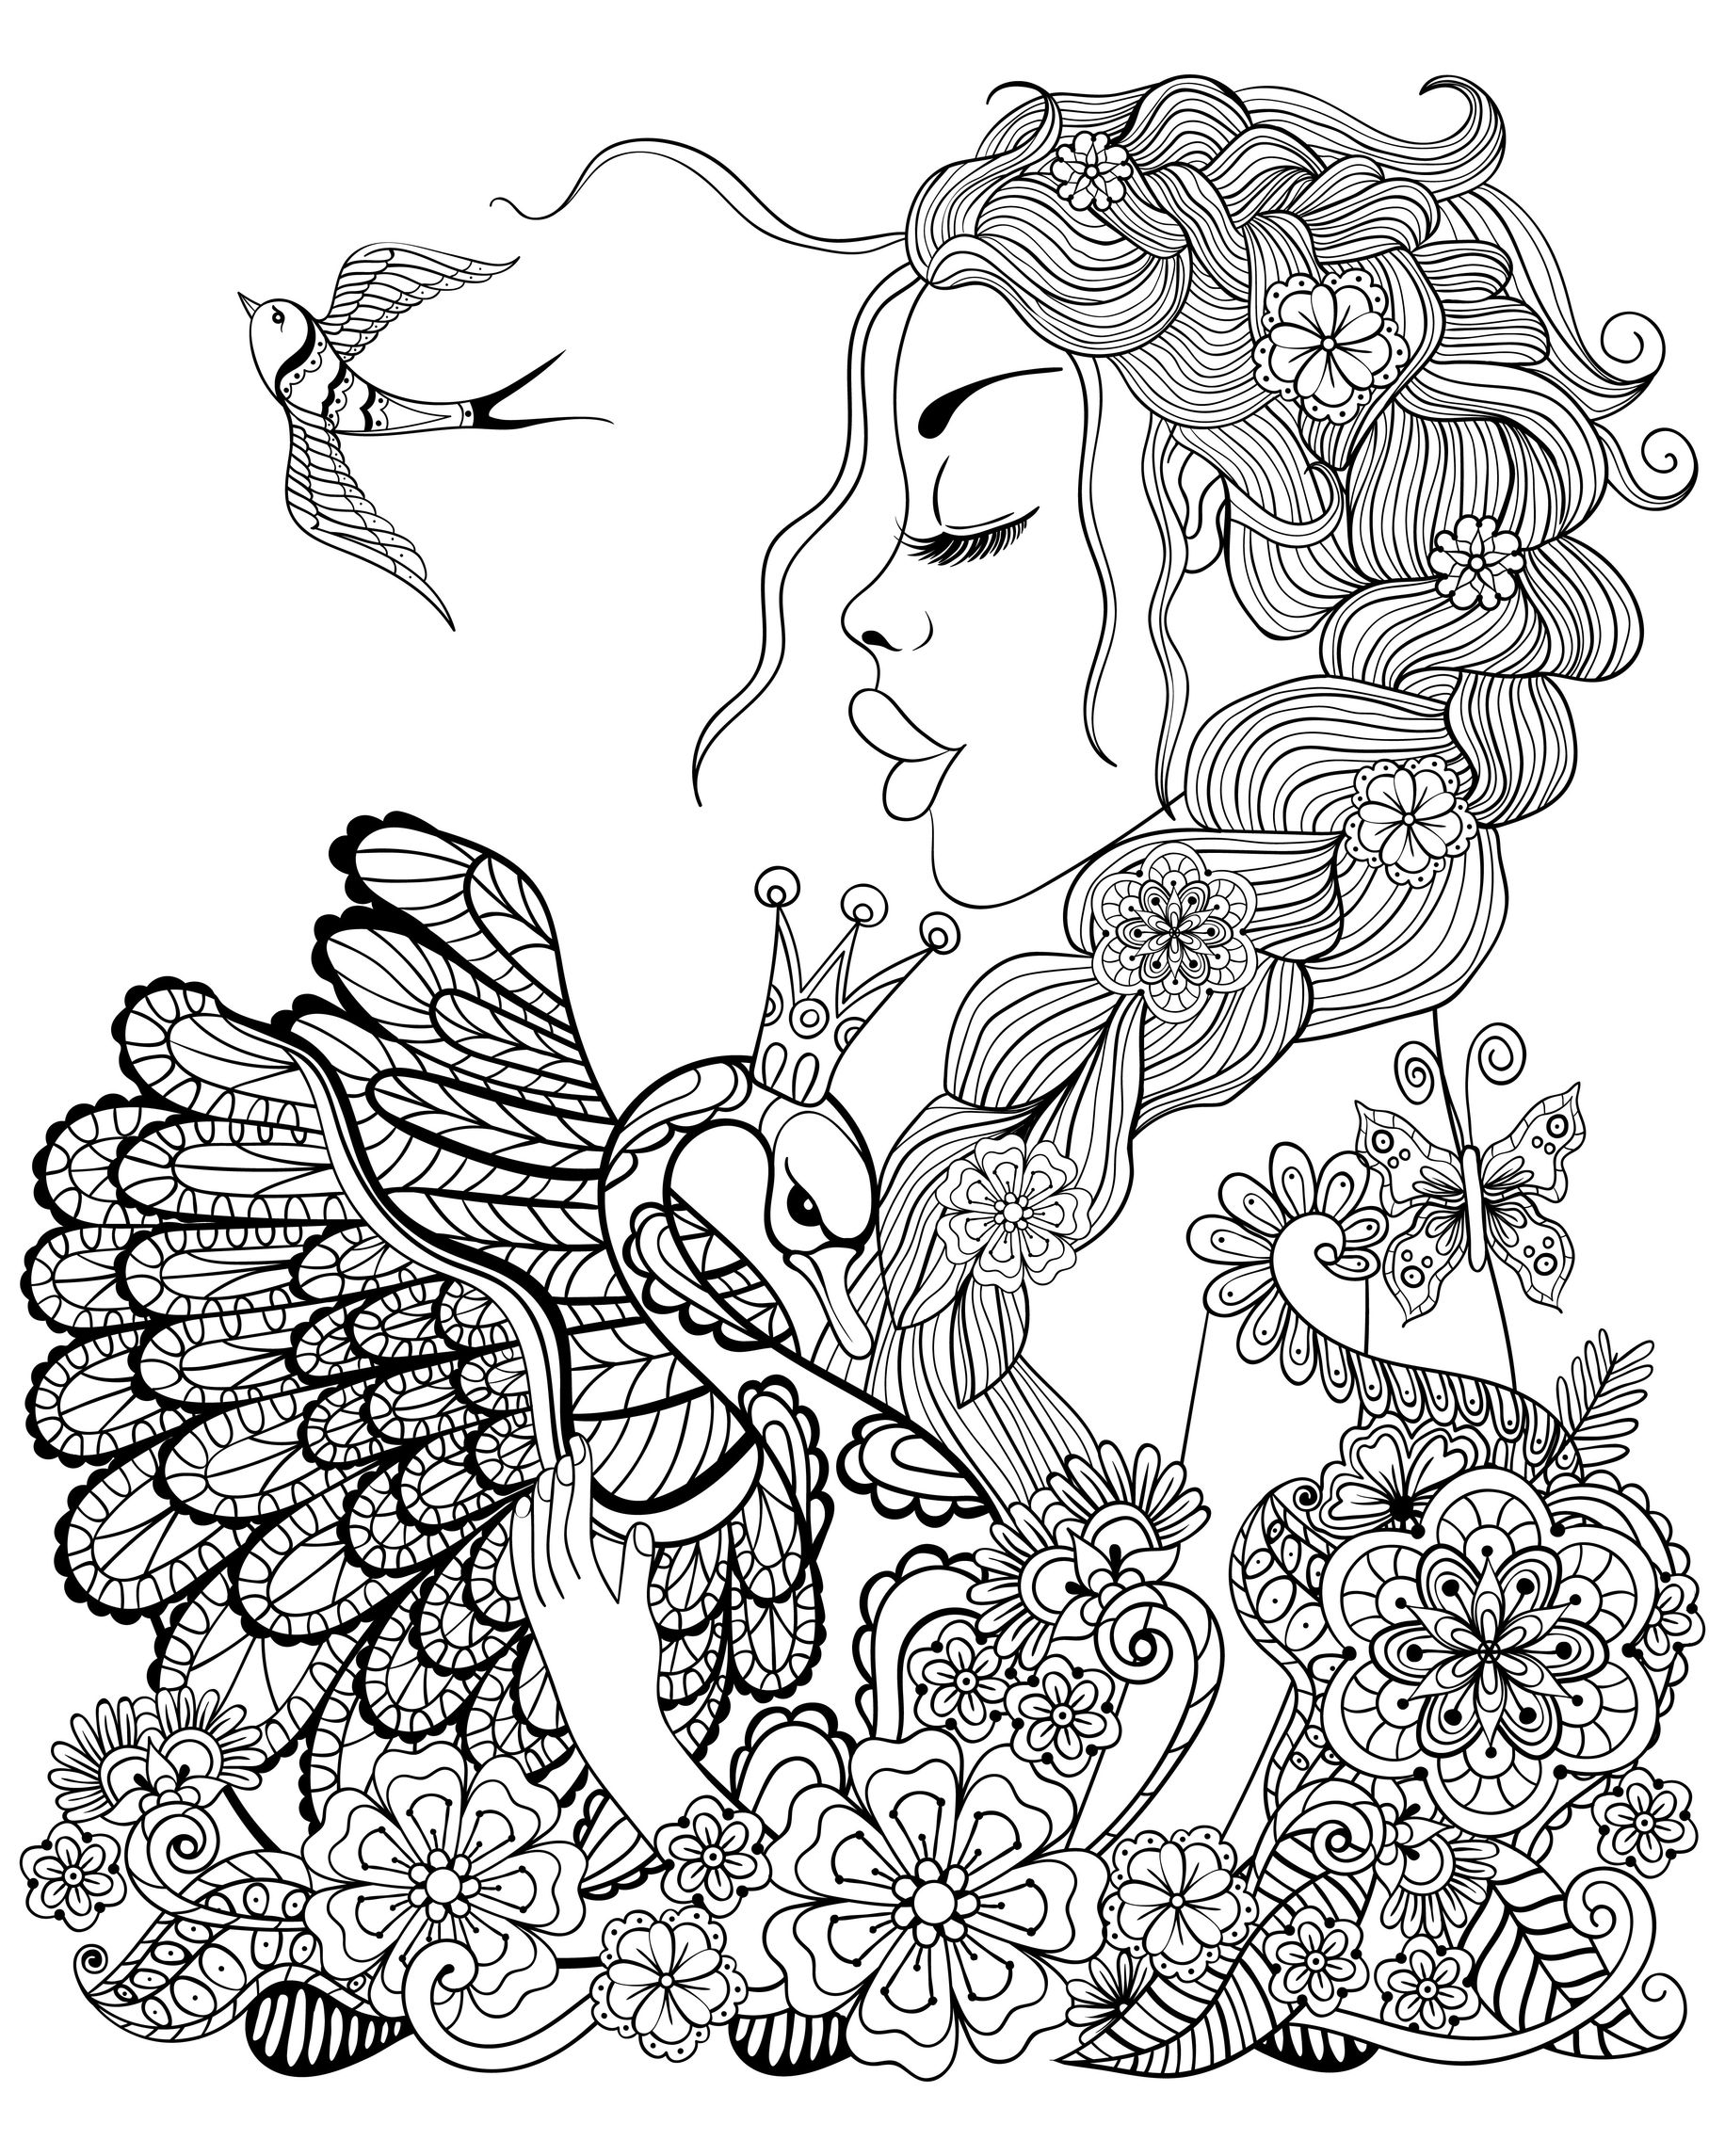 fairy coloring pages for adults. Black Bedroom Furniture Sets. Home Design Ideas